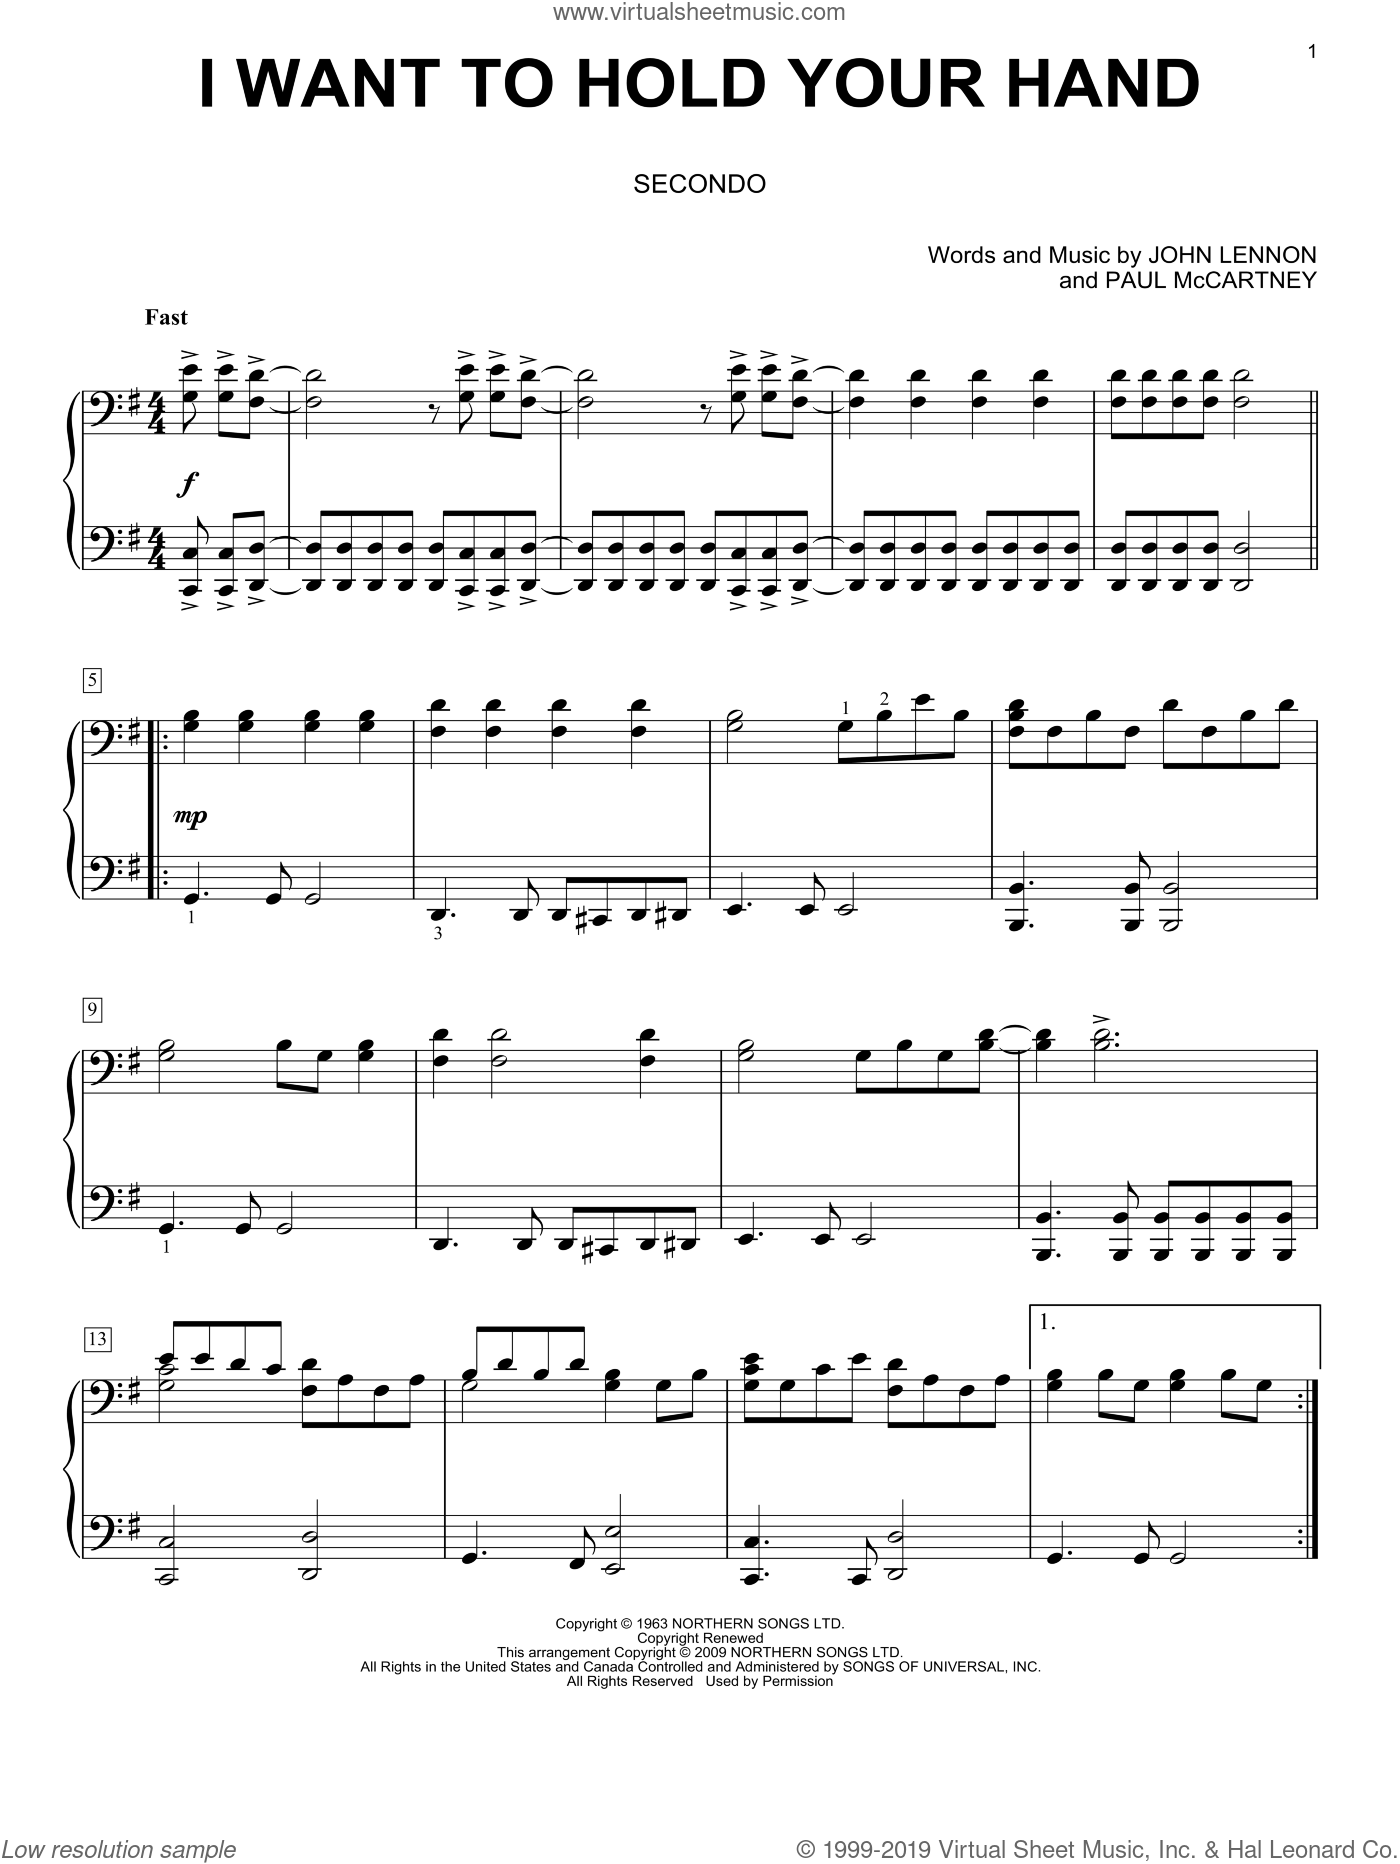 I Want To Hold Your Hand sheet music for piano four hands (duets) by Paul McCartney